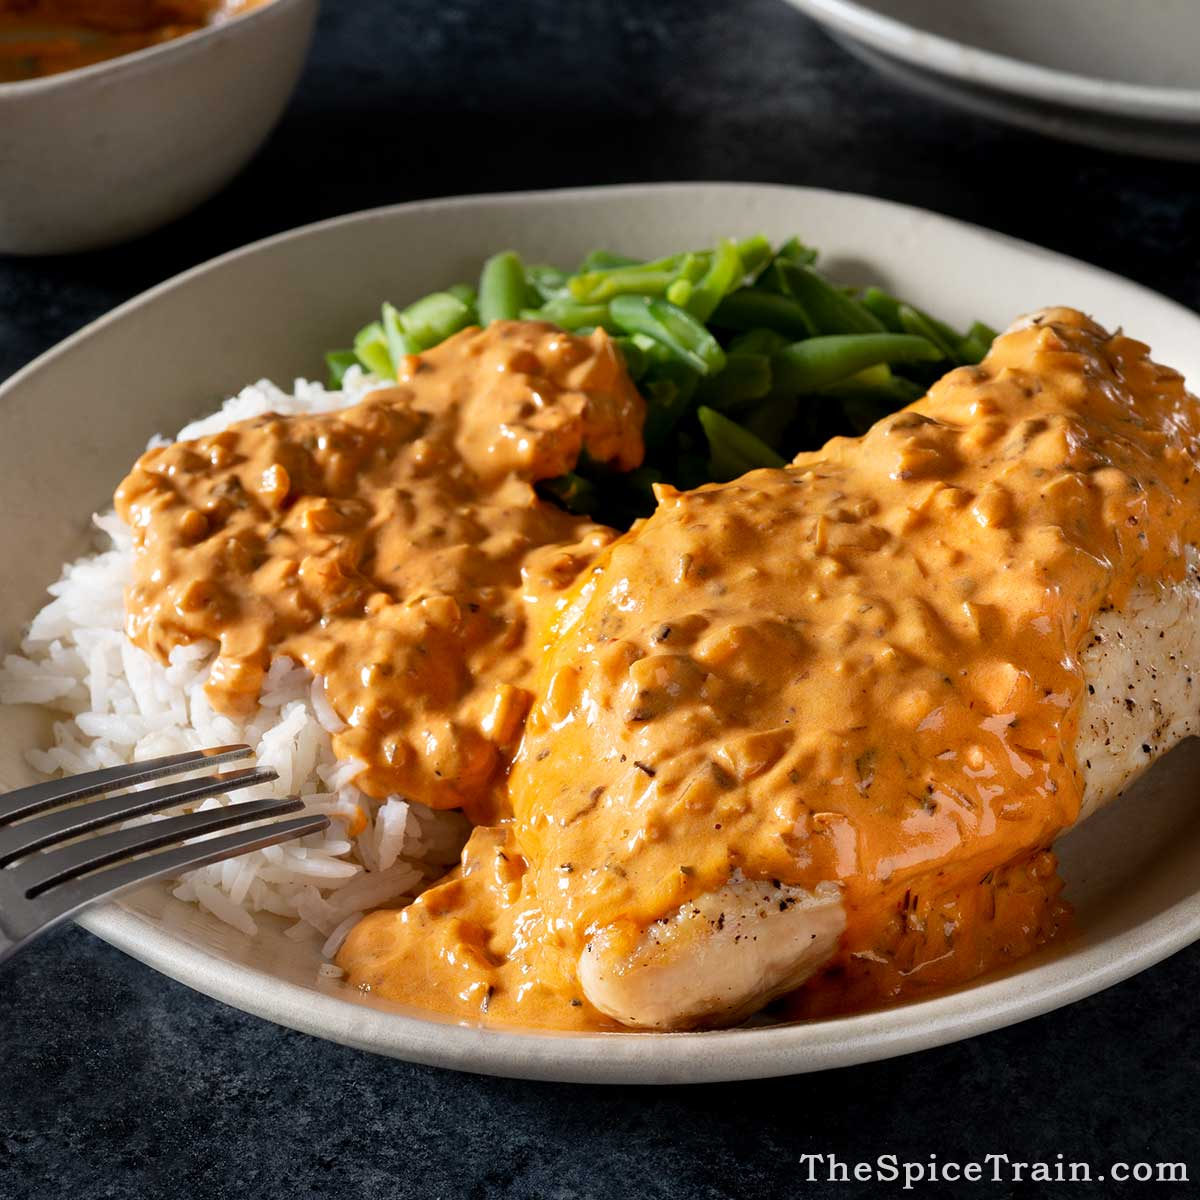 Chicken breast covered in chipotle sauce with rice and green beans.